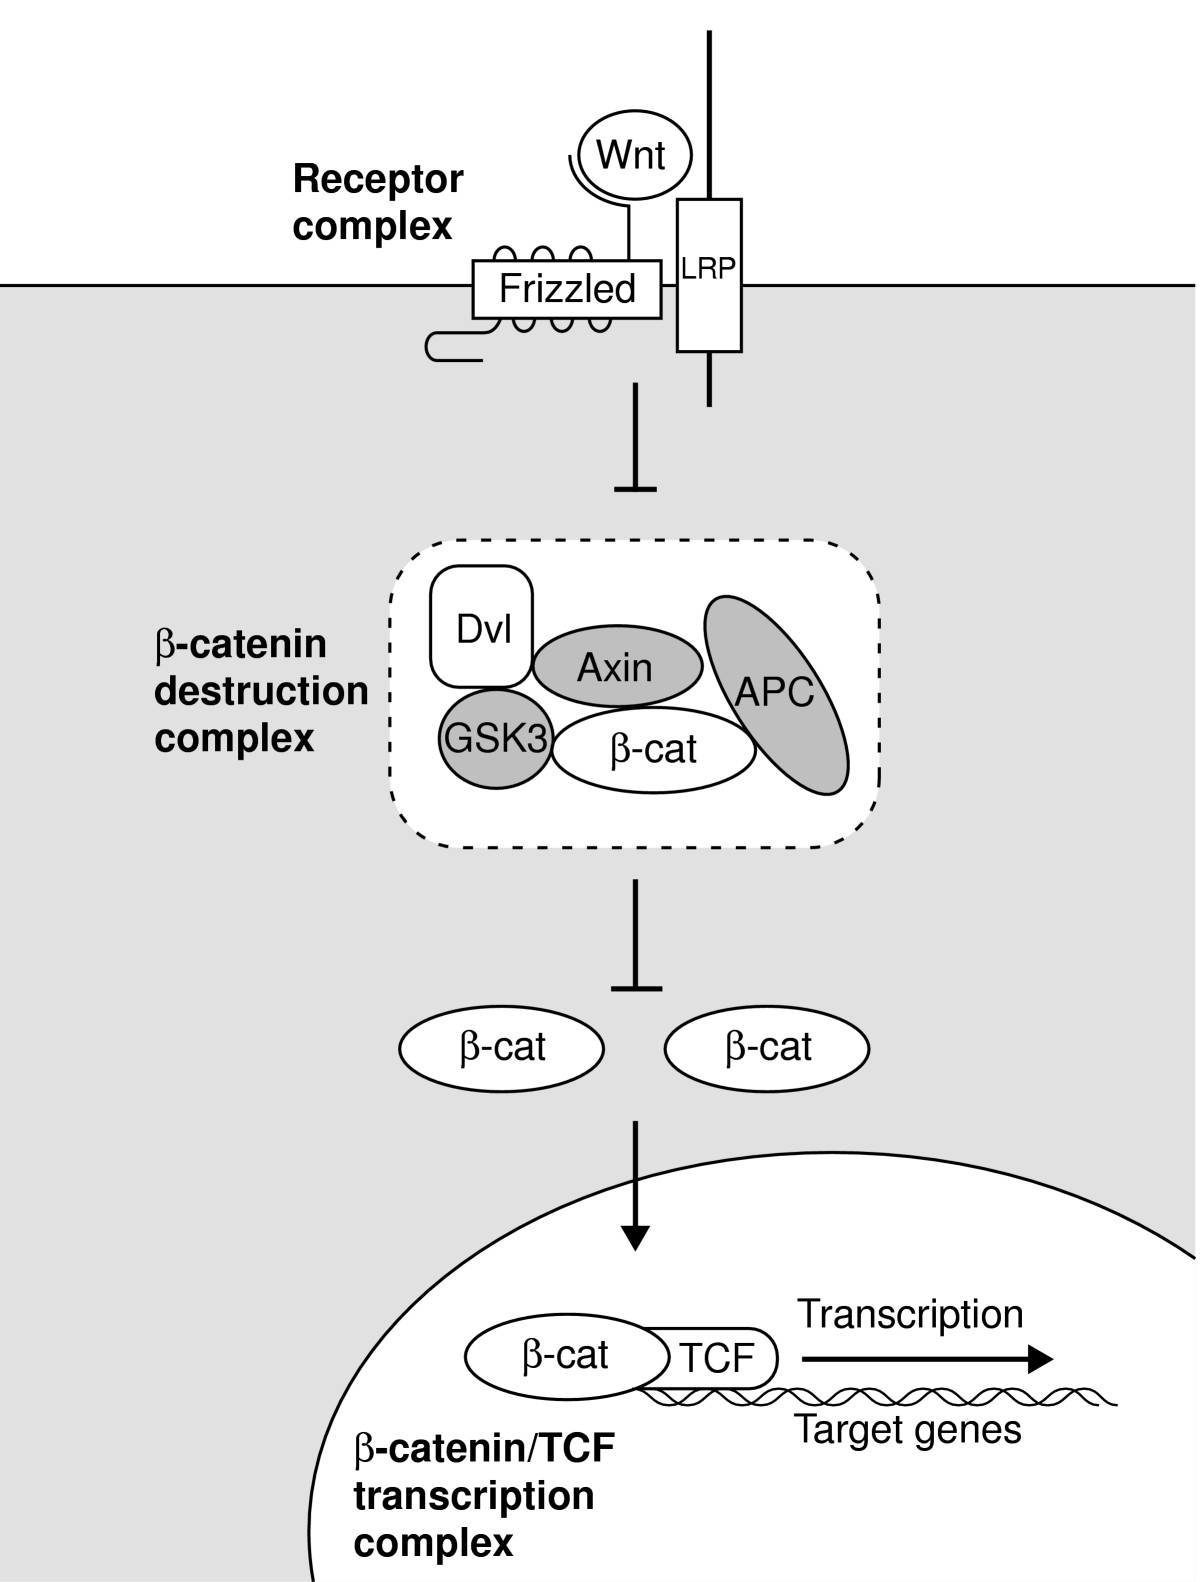 https://static-content.springer.com/image/art%3A10.1186%2Fgb-2005-6-9-231/MediaObjects/13059_2005_Article_975_Fig1_HTML.jpg